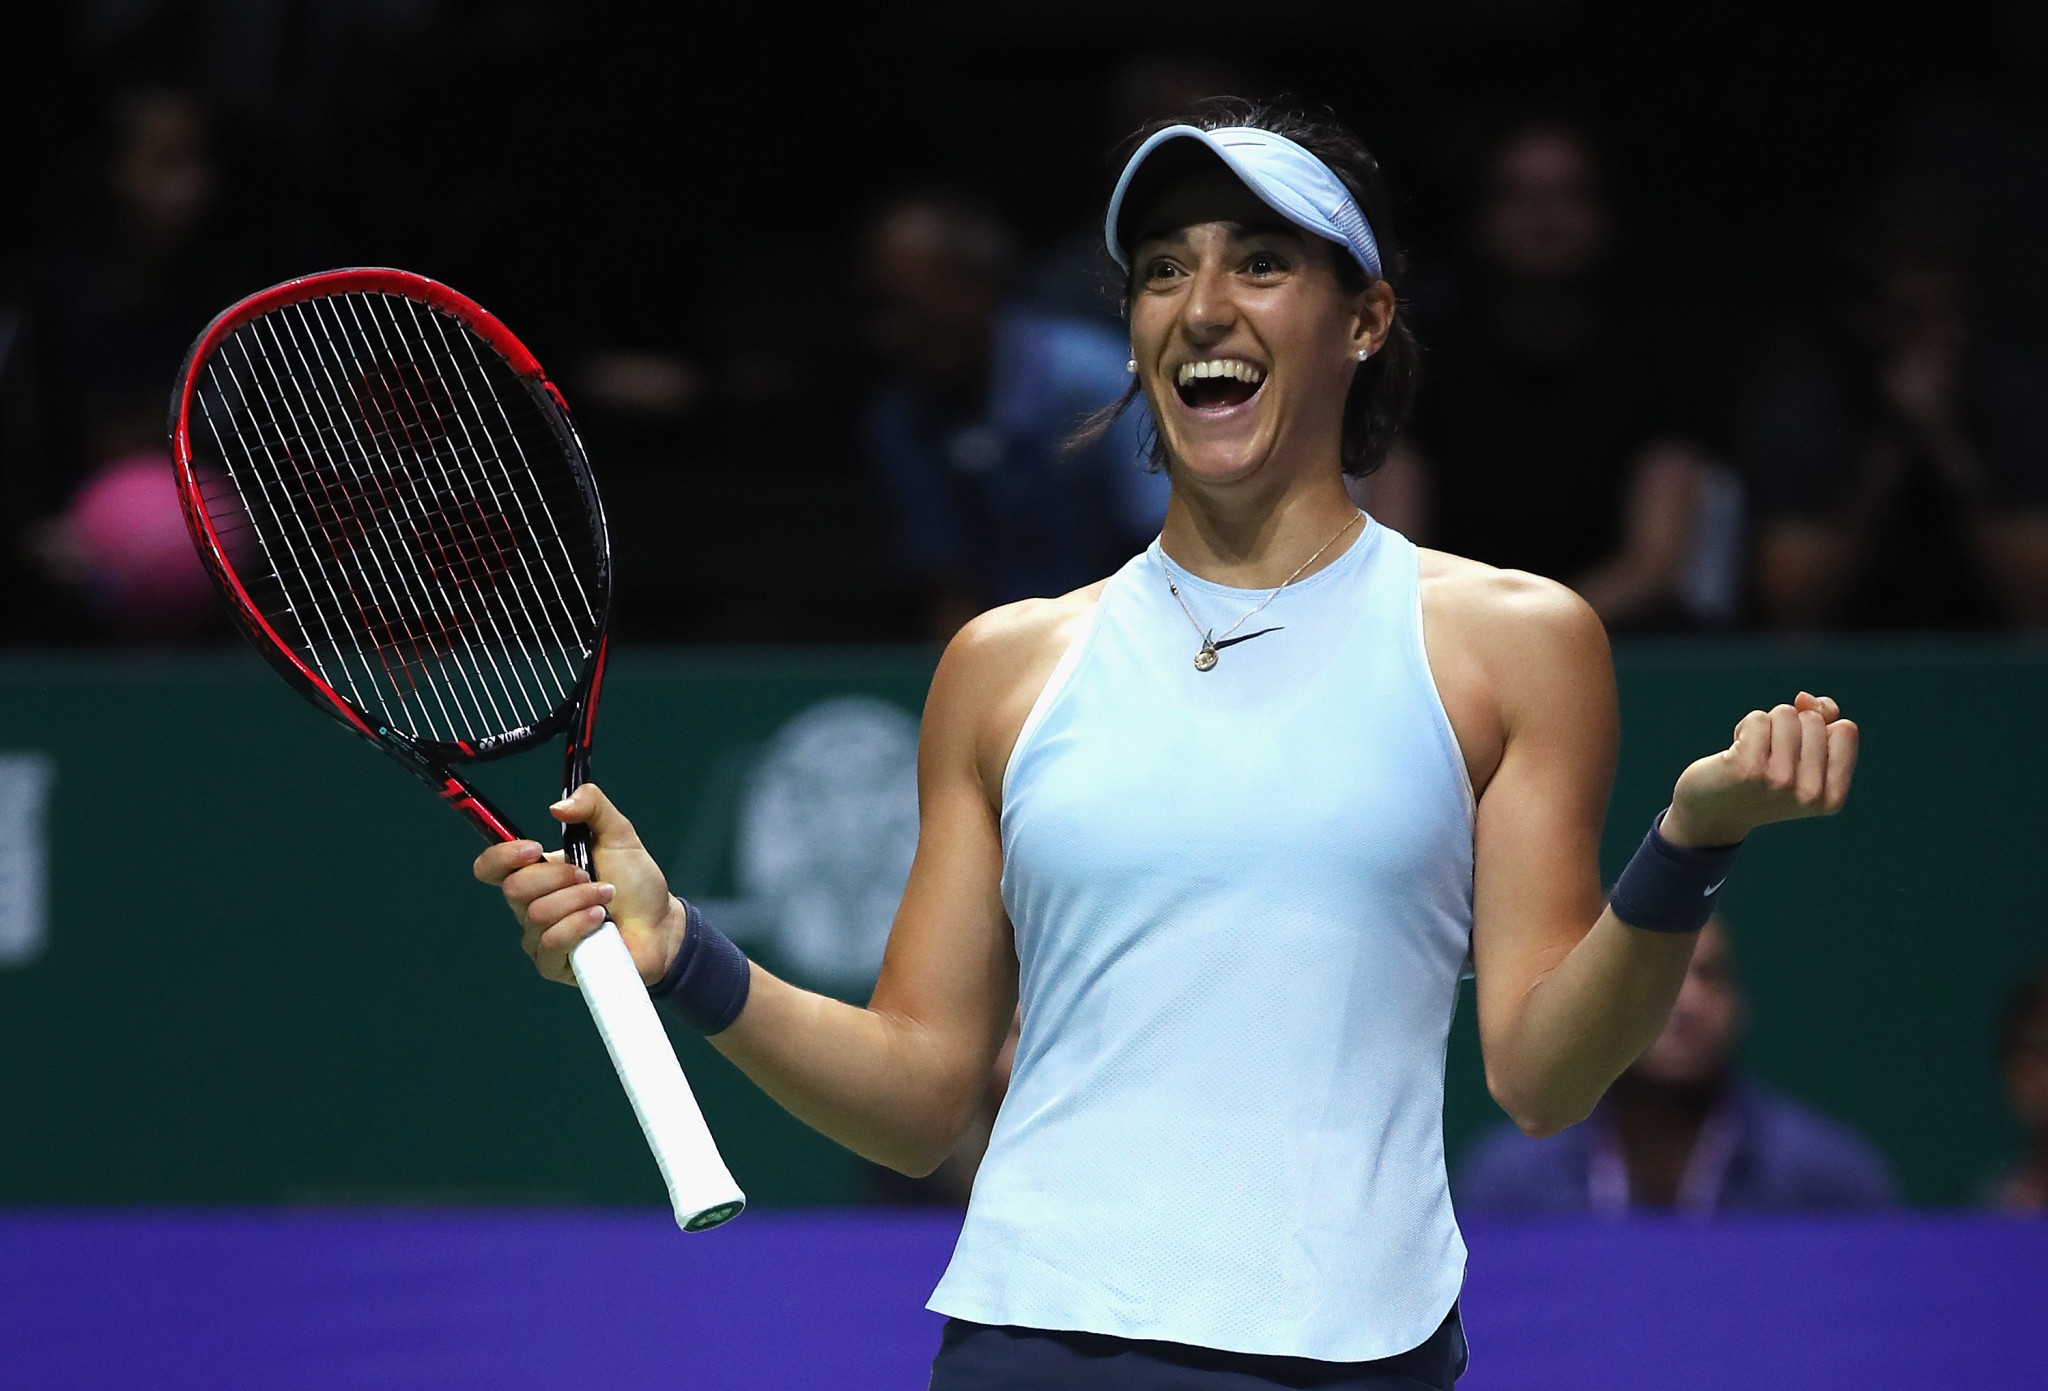 Caroline Garcia, pictured, claimed a sensational three-set comeback victory over Caroline Wozniacki today ©Getty Images